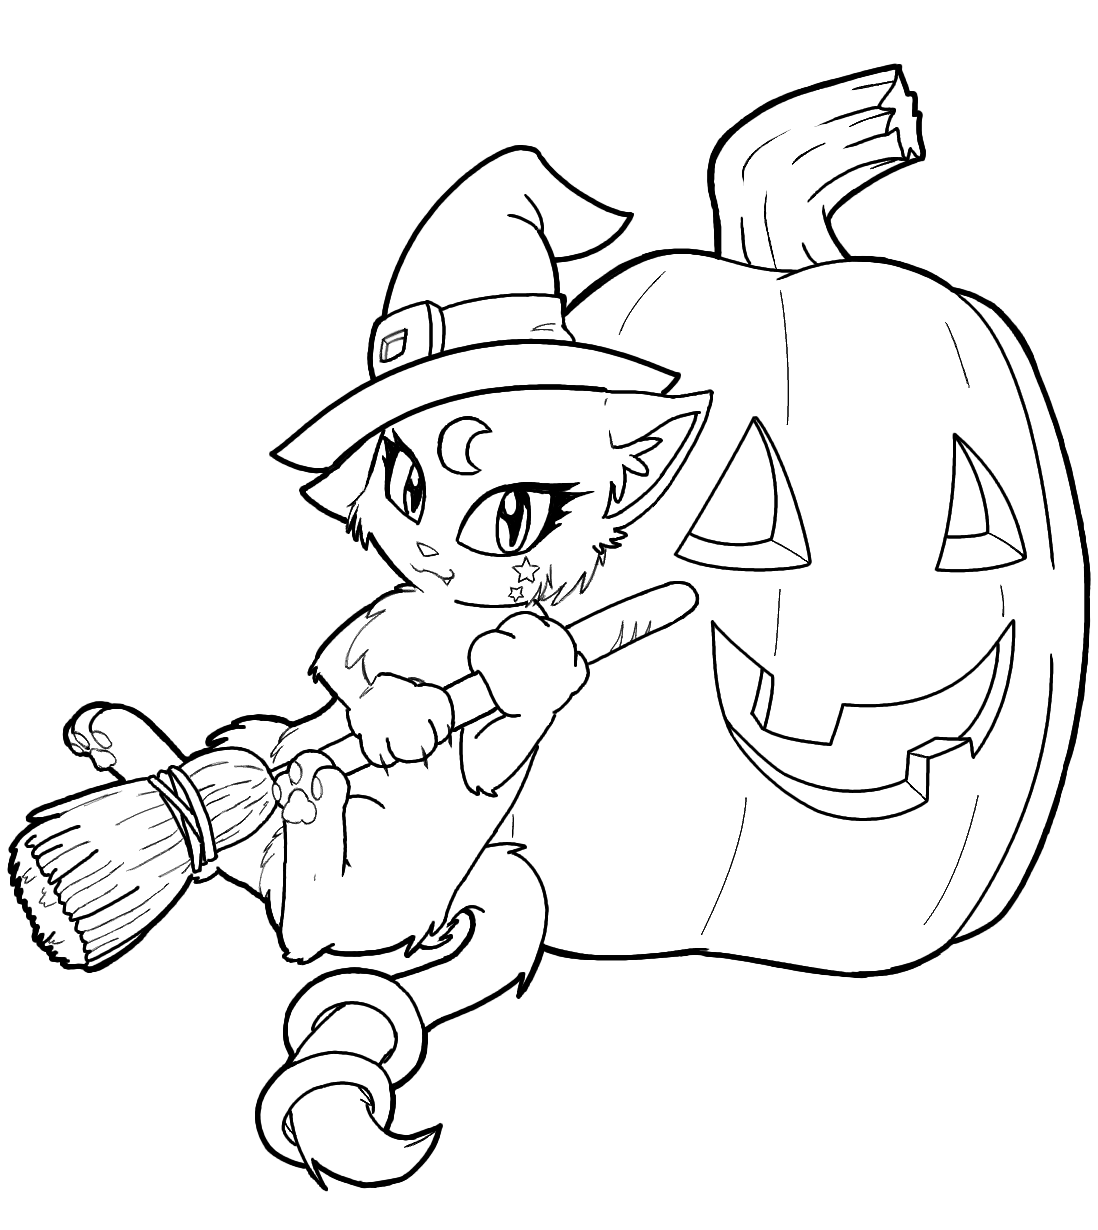 Free Printable Witch Coloring Pages For Kids | IColor "|1098|1230|?|3edf5572d28a56e7d5713c56123b5885|False|UNLIKELY|0.3101482093334198